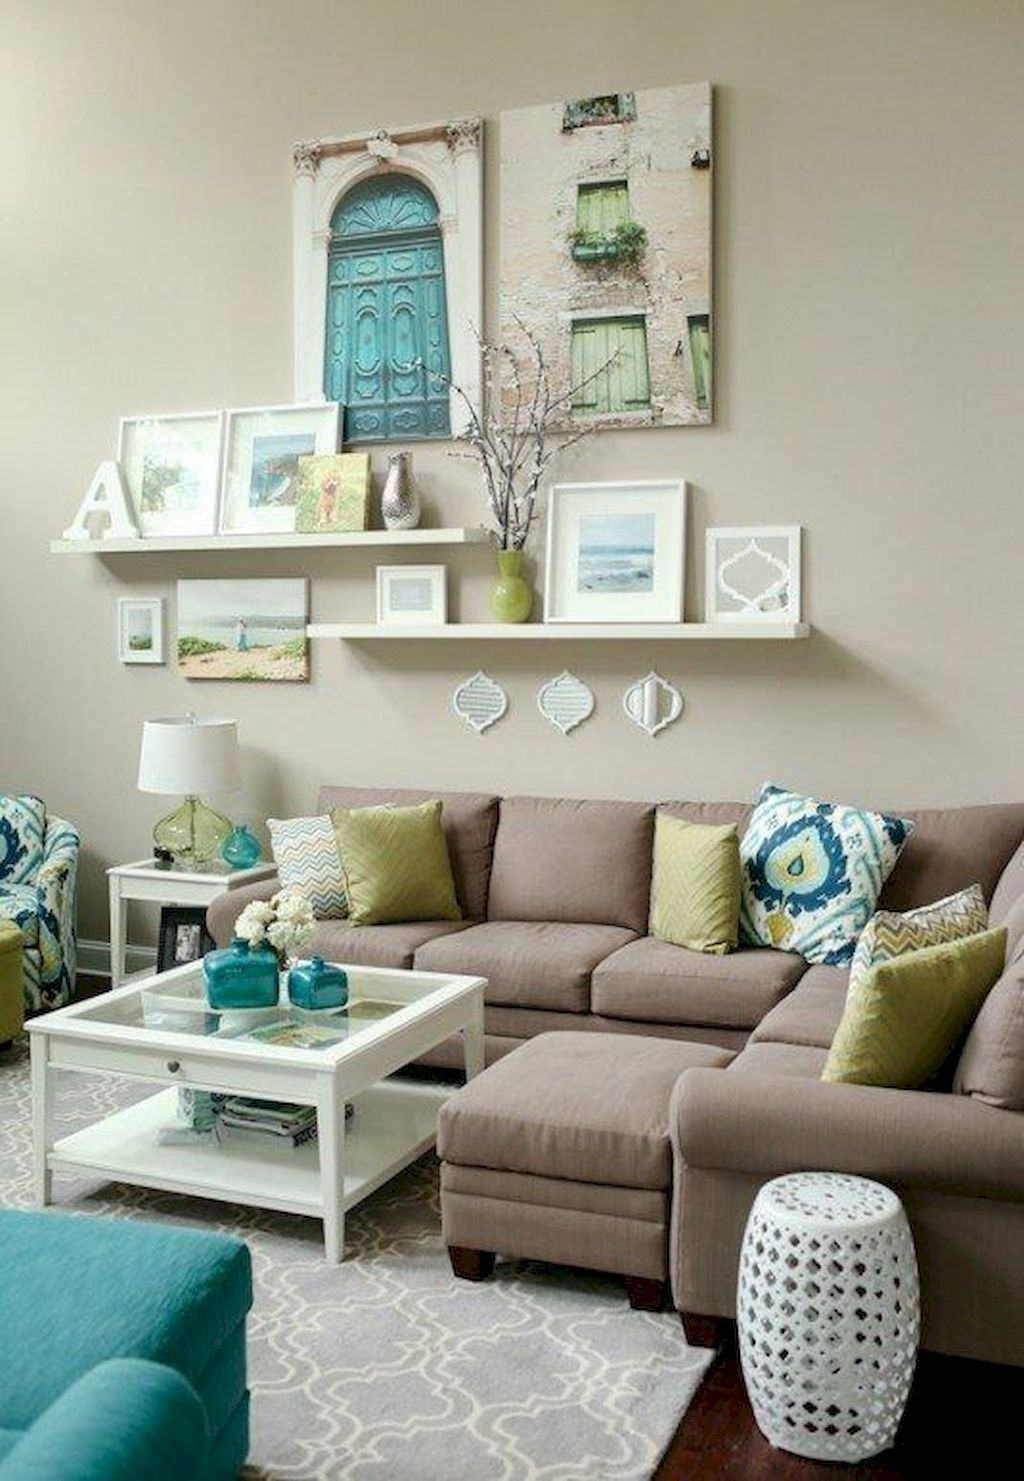 01 rustic living room decor with floating shelves ideas is part of Living Room Shelves Color - 01 rustic living room decor with floating shelves ideas